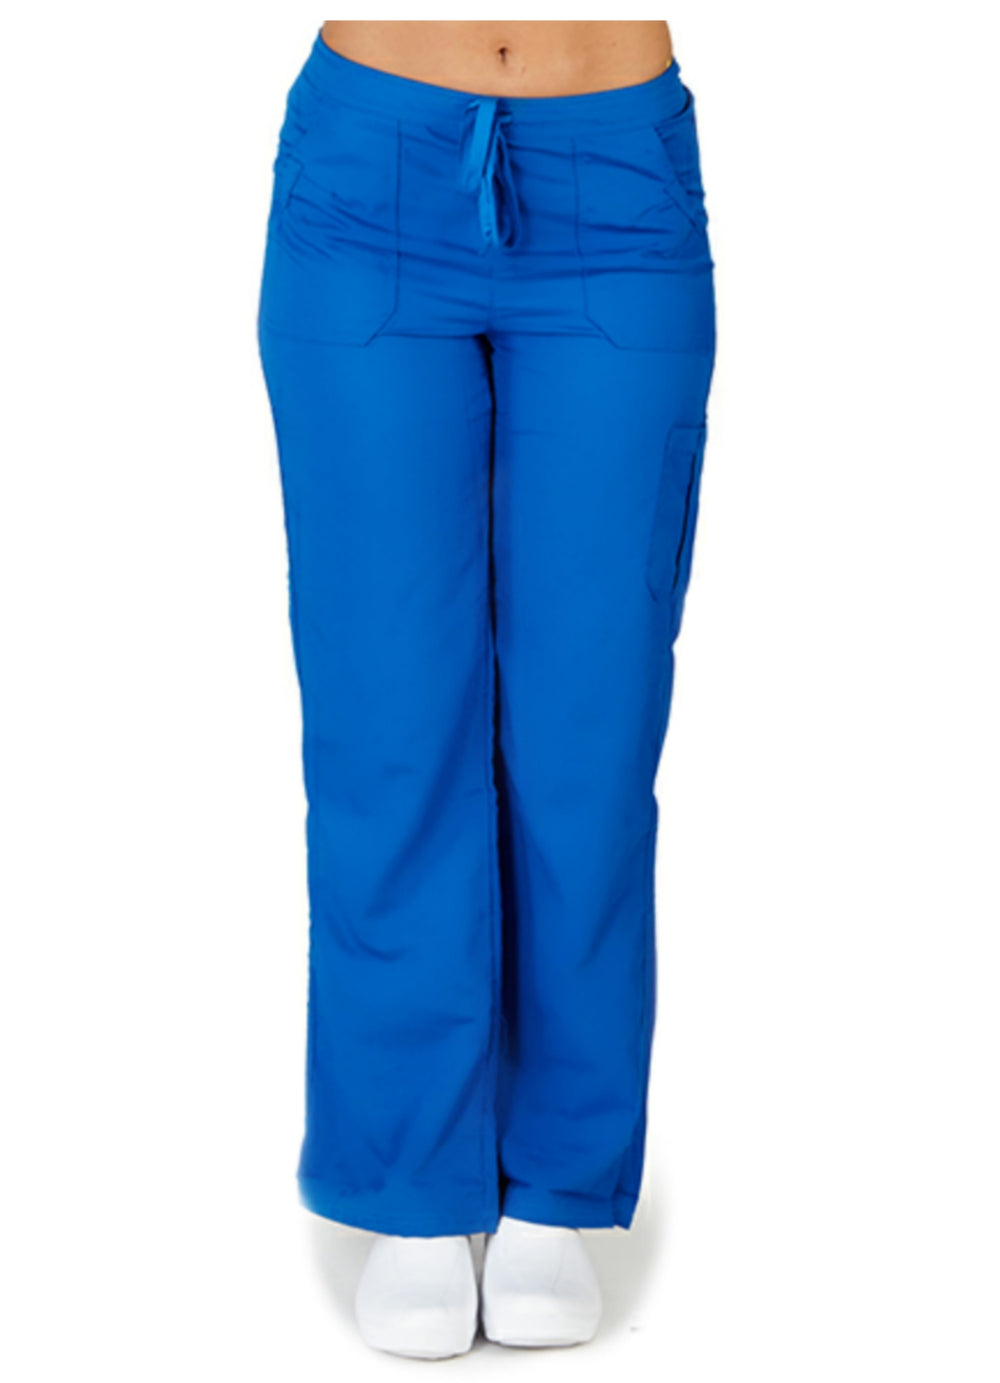 Ultrasoft 4 Pocket Cargo Scrub Pant - My Favorite Scrubs